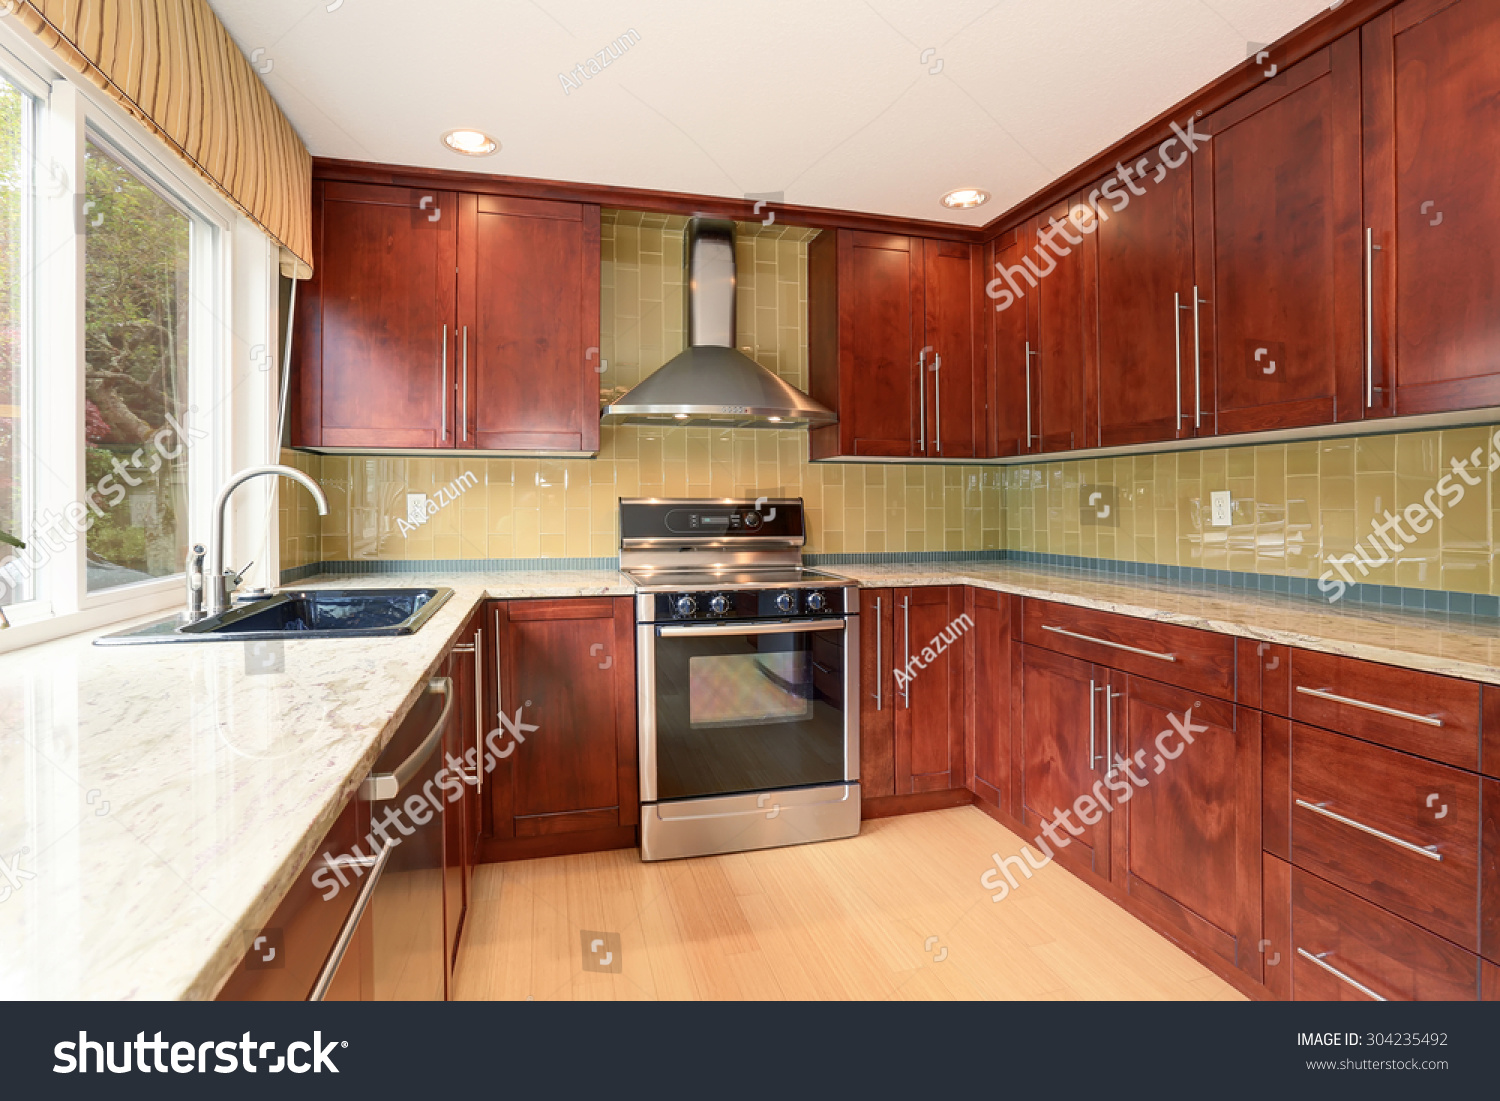 how to clean stained kitchen cabinets clean style kitchen stained wood cabinets stock photo 8582